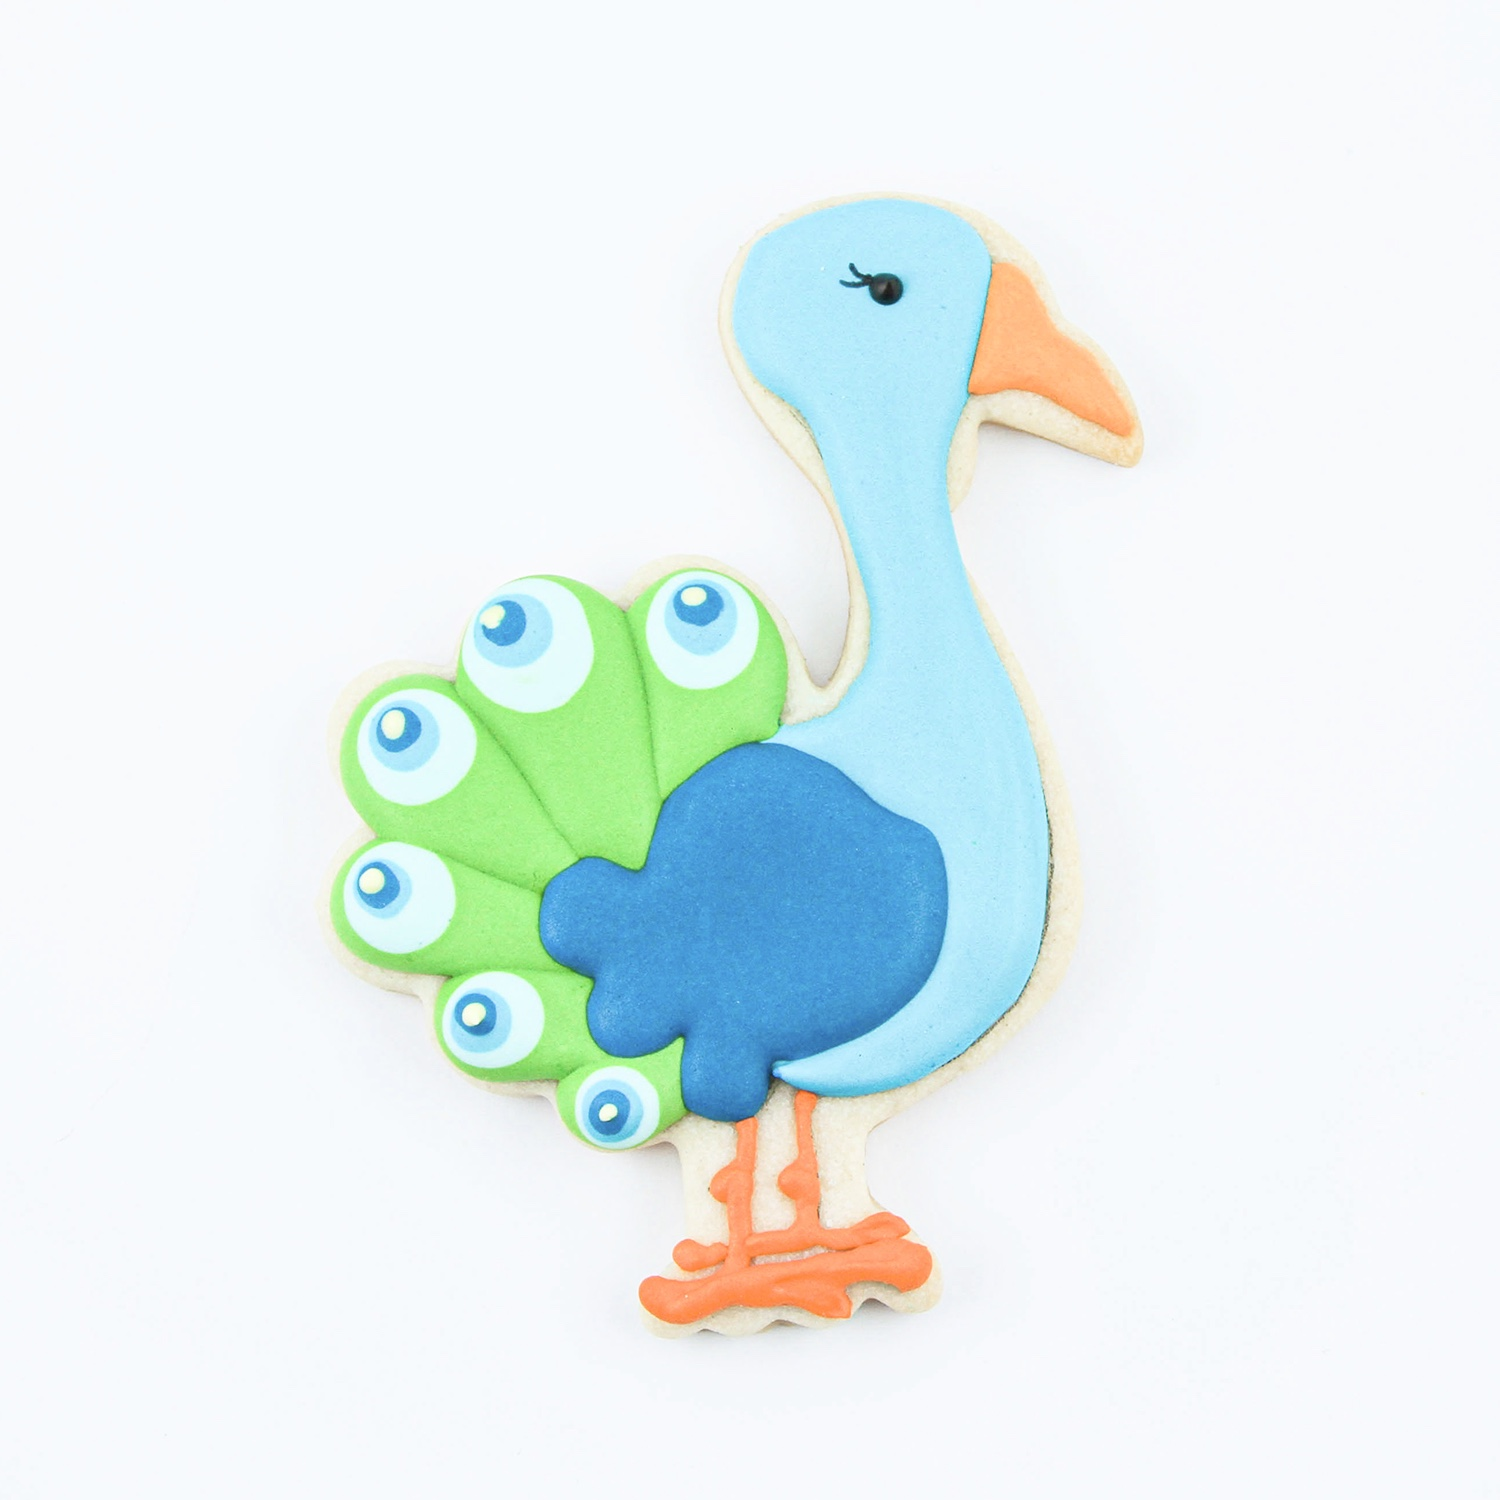 Peacock Royal Icing Cookie